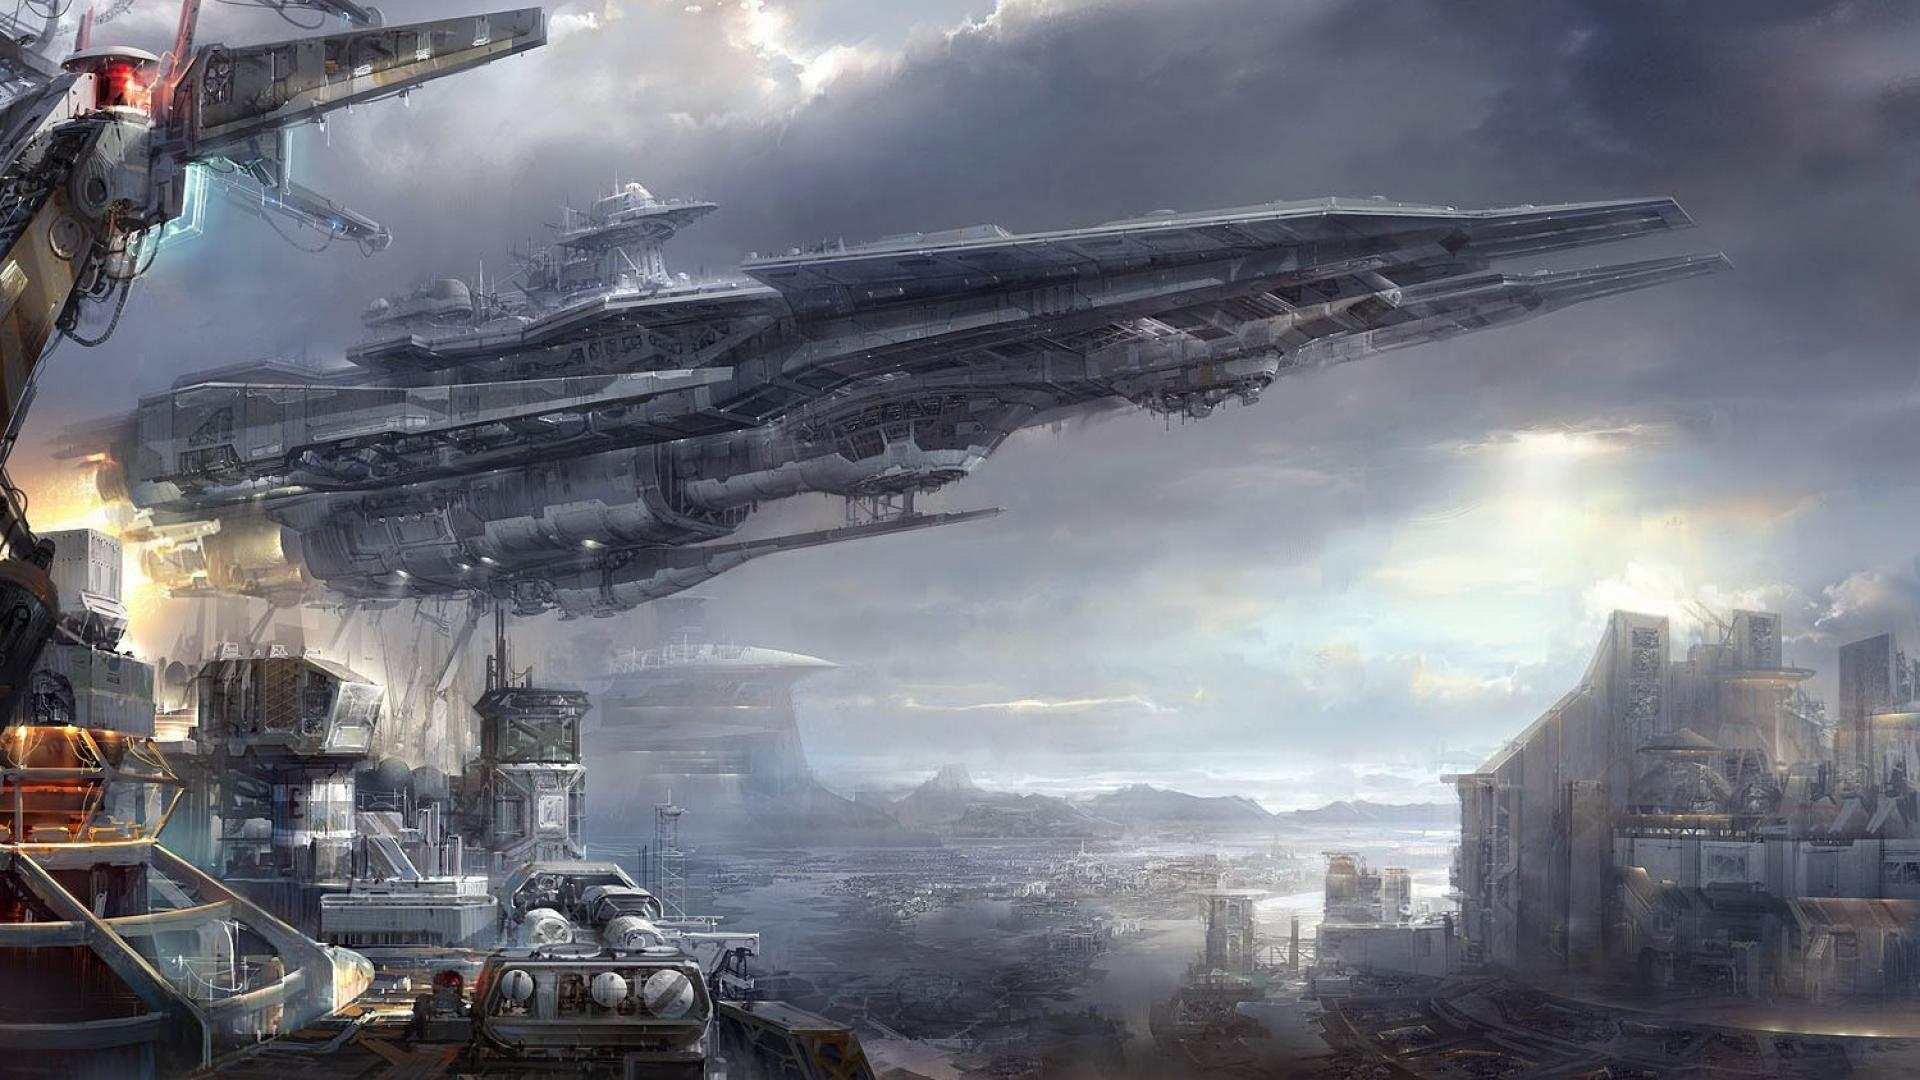 Spaceship Wallpaper 1920X1080 Hd Images 3 HD Wallpapers | aduphoto.